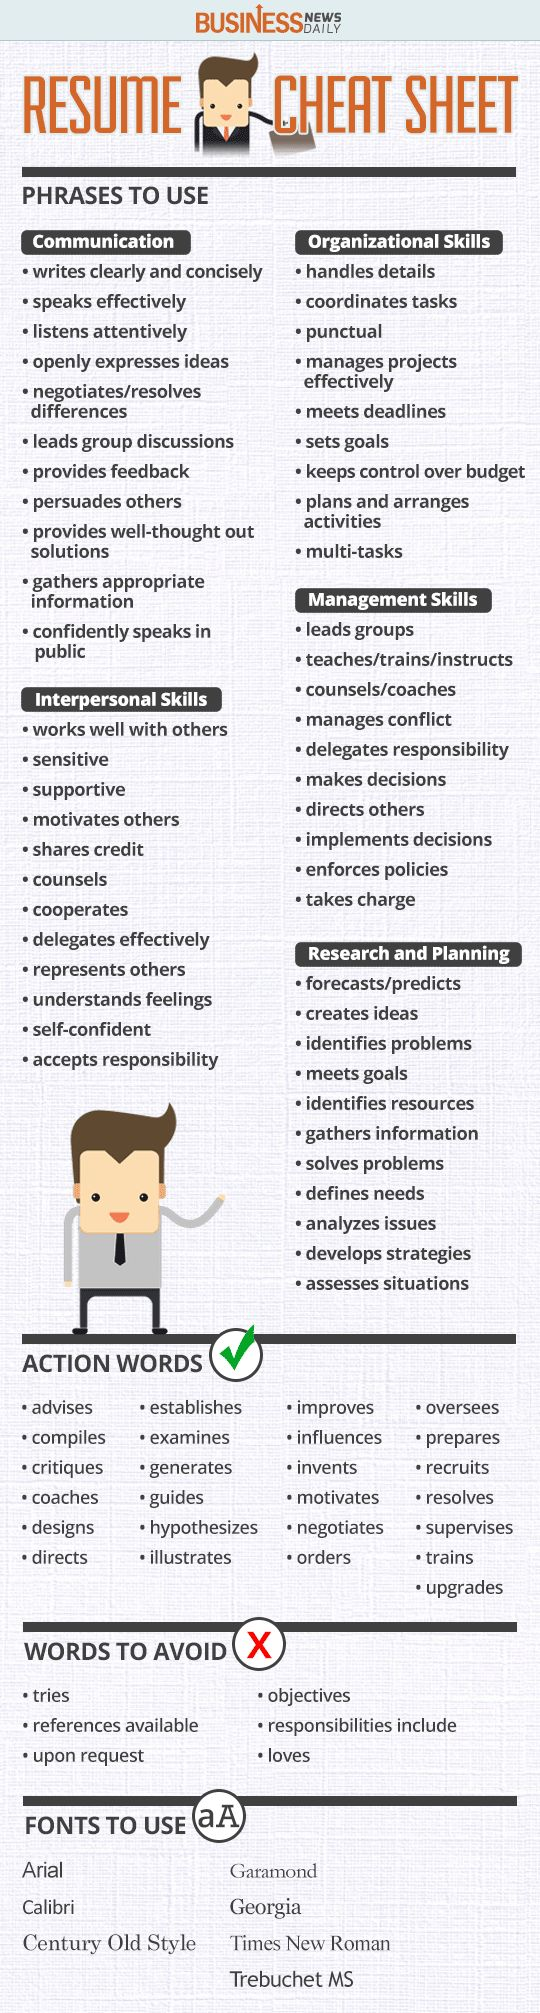 Opposenewapstandardsus  Gorgeous  Ideas About Resume On Pinterest  Cv Format Resume Cv And  With Lovely Resume Cheat Sheet Infographic Andrews Almost Done With A Complete Unit On Employment Which With Extraordinary Help Making A Resume For Free Also Resume Steps In Addition Resume Summary Vs Objective And Example Of Bad Resume As Well As Nurse Resume Templates Additionally Example Resume College Student From Pinterestcom With Opposenewapstandardsus  Lovely  Ideas About Resume On Pinterest  Cv Format Resume Cv And  With Extraordinary Resume Cheat Sheet Infographic Andrews Almost Done With A Complete Unit On Employment Which And Gorgeous Help Making A Resume For Free Also Resume Steps In Addition Resume Summary Vs Objective From Pinterestcom